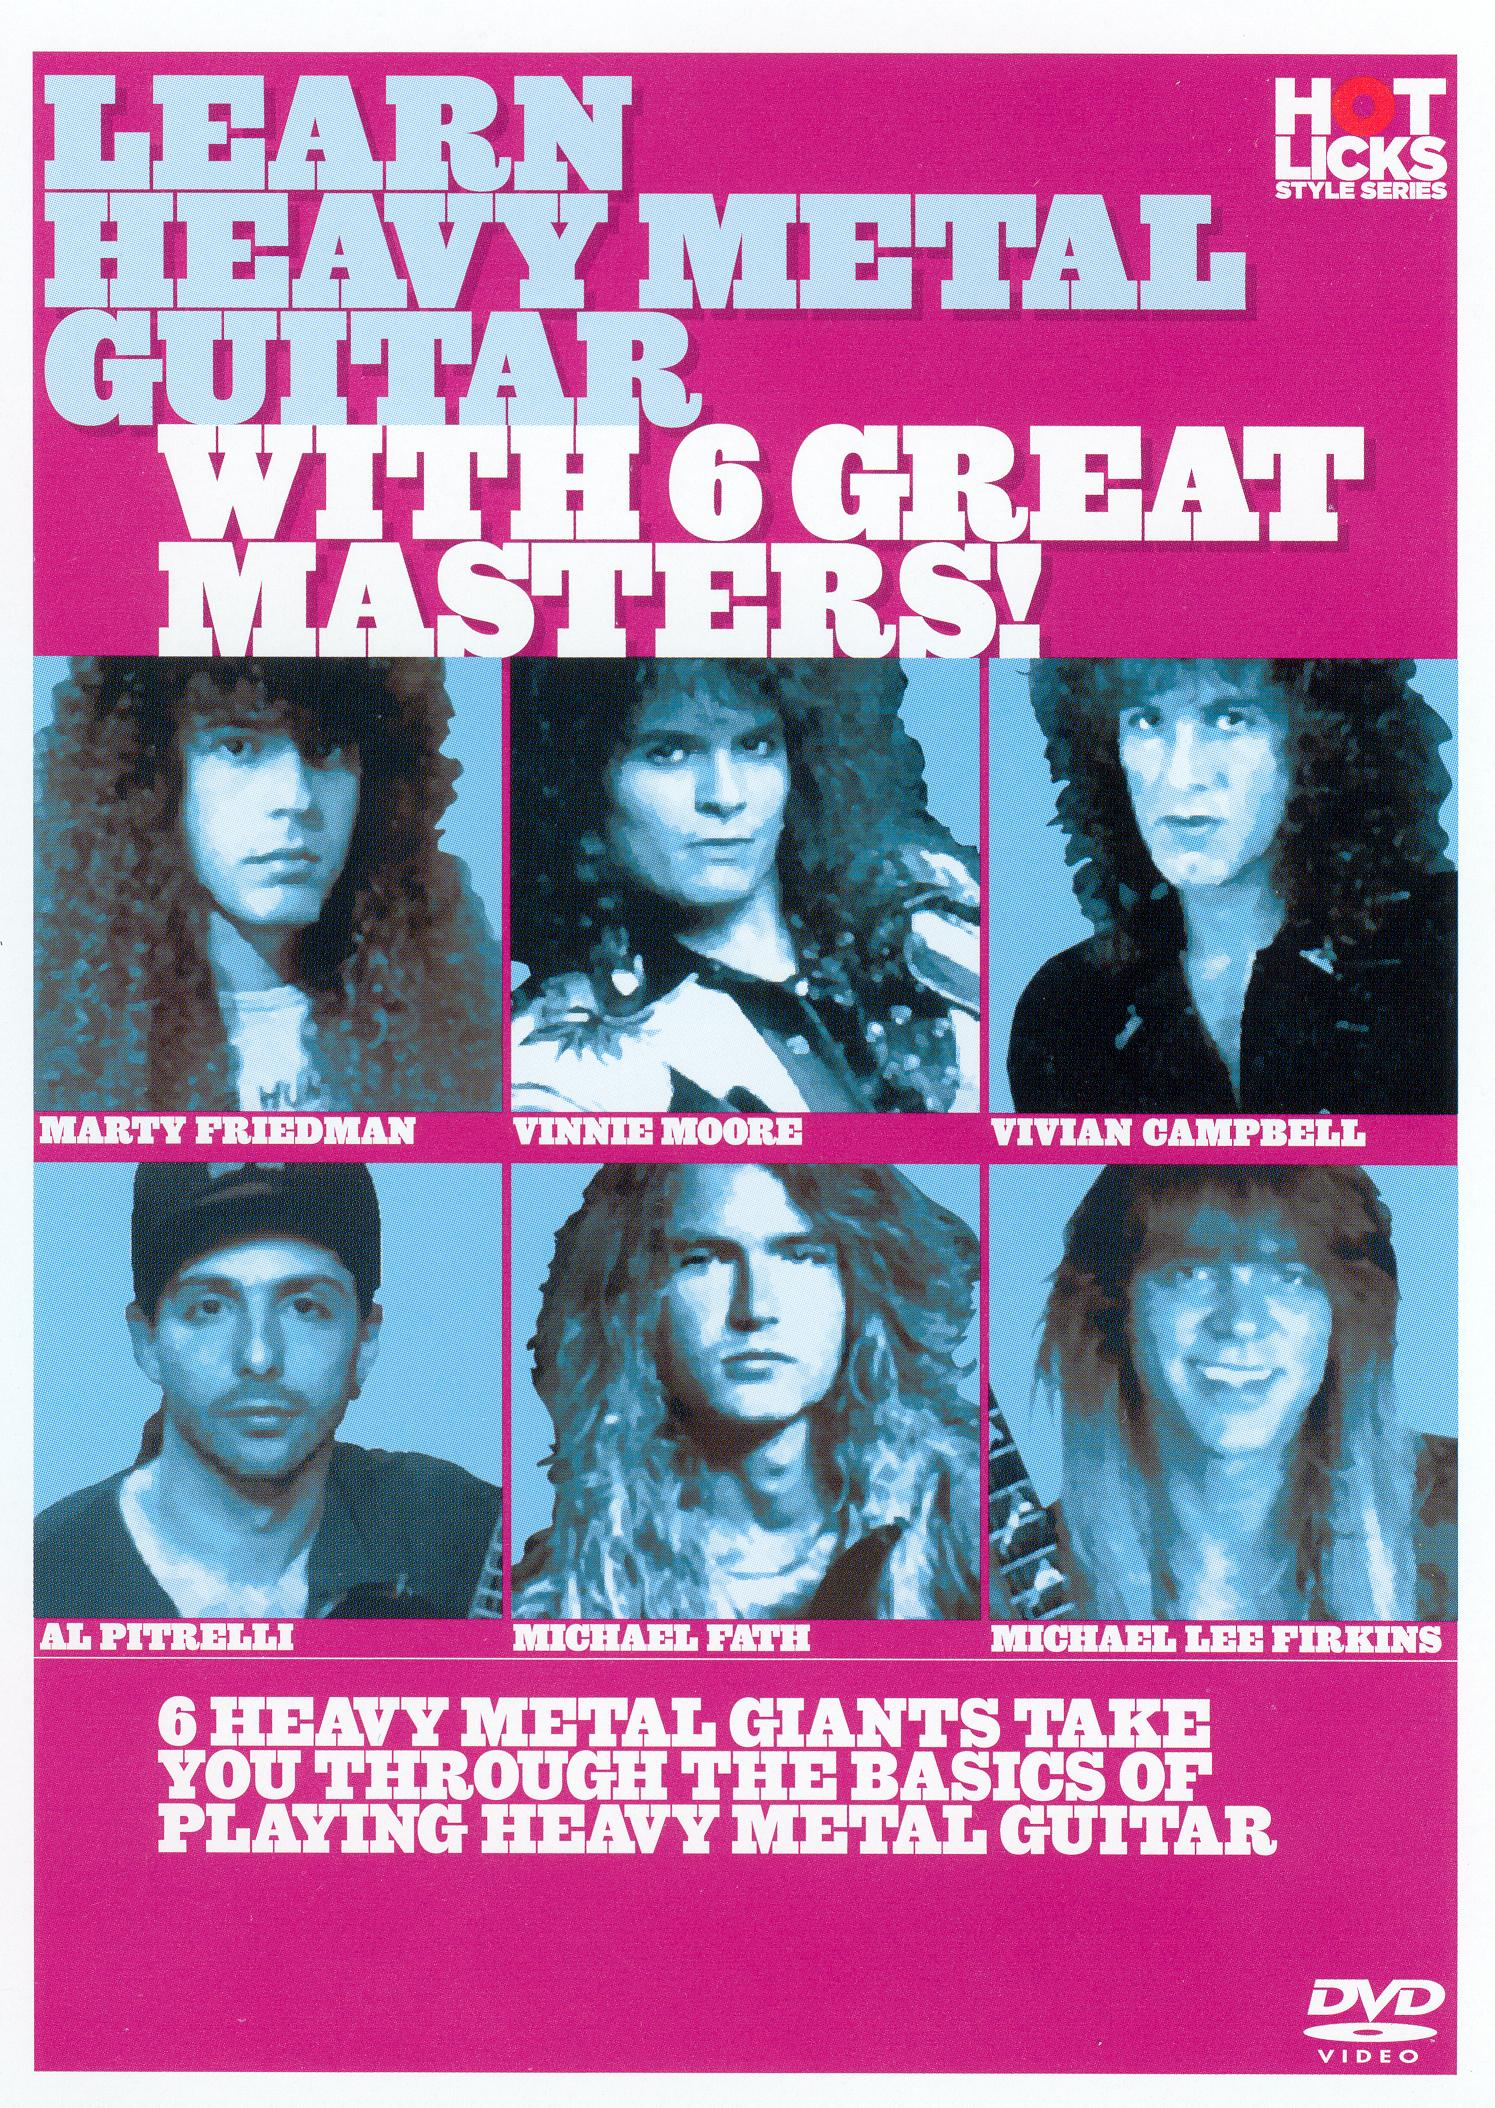 Learn Heavy Metal Guitar with 6 Great Masters